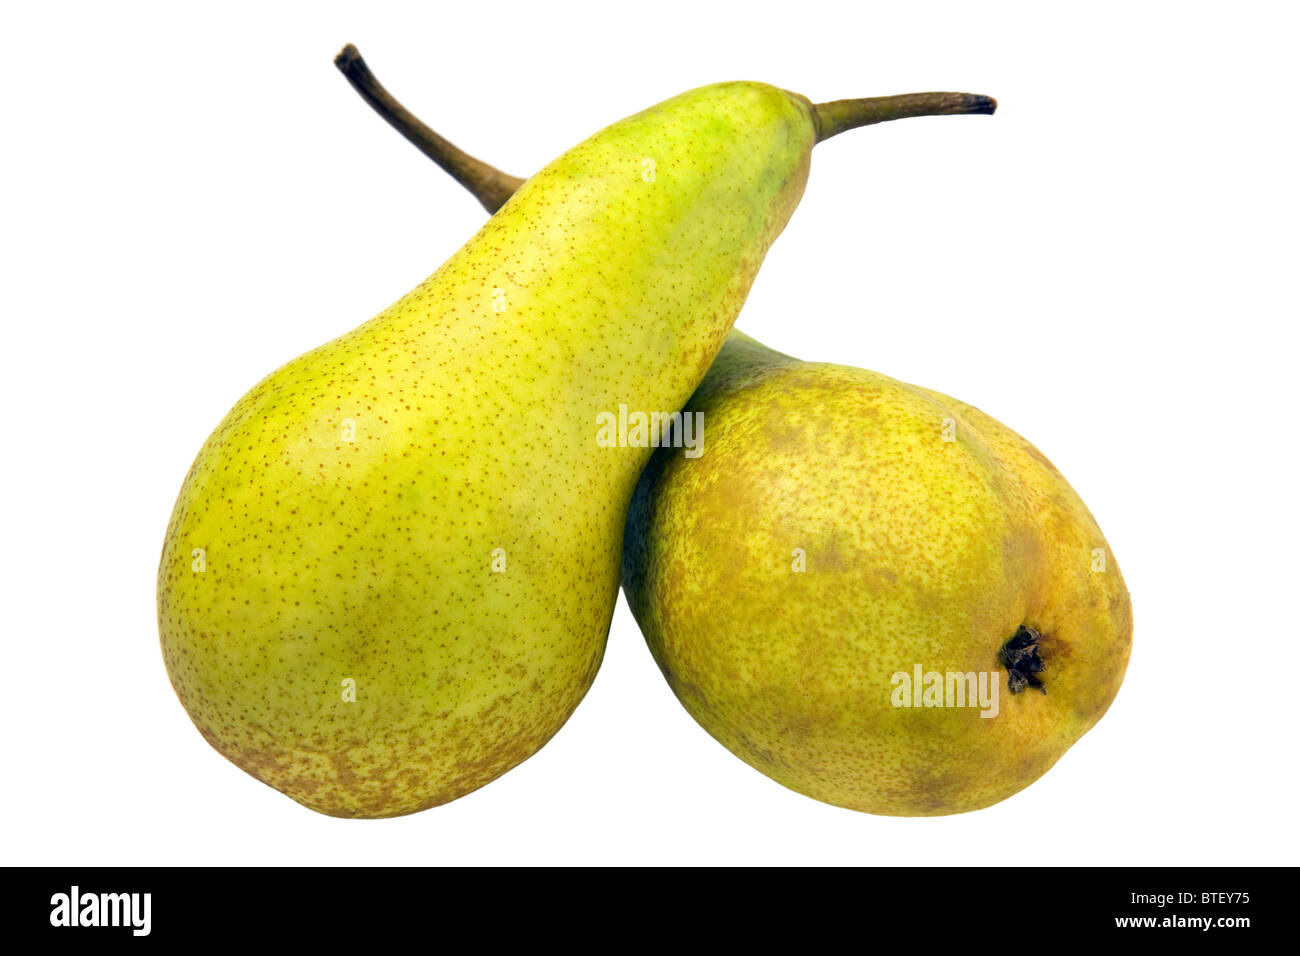 Two Pears - Stock Image